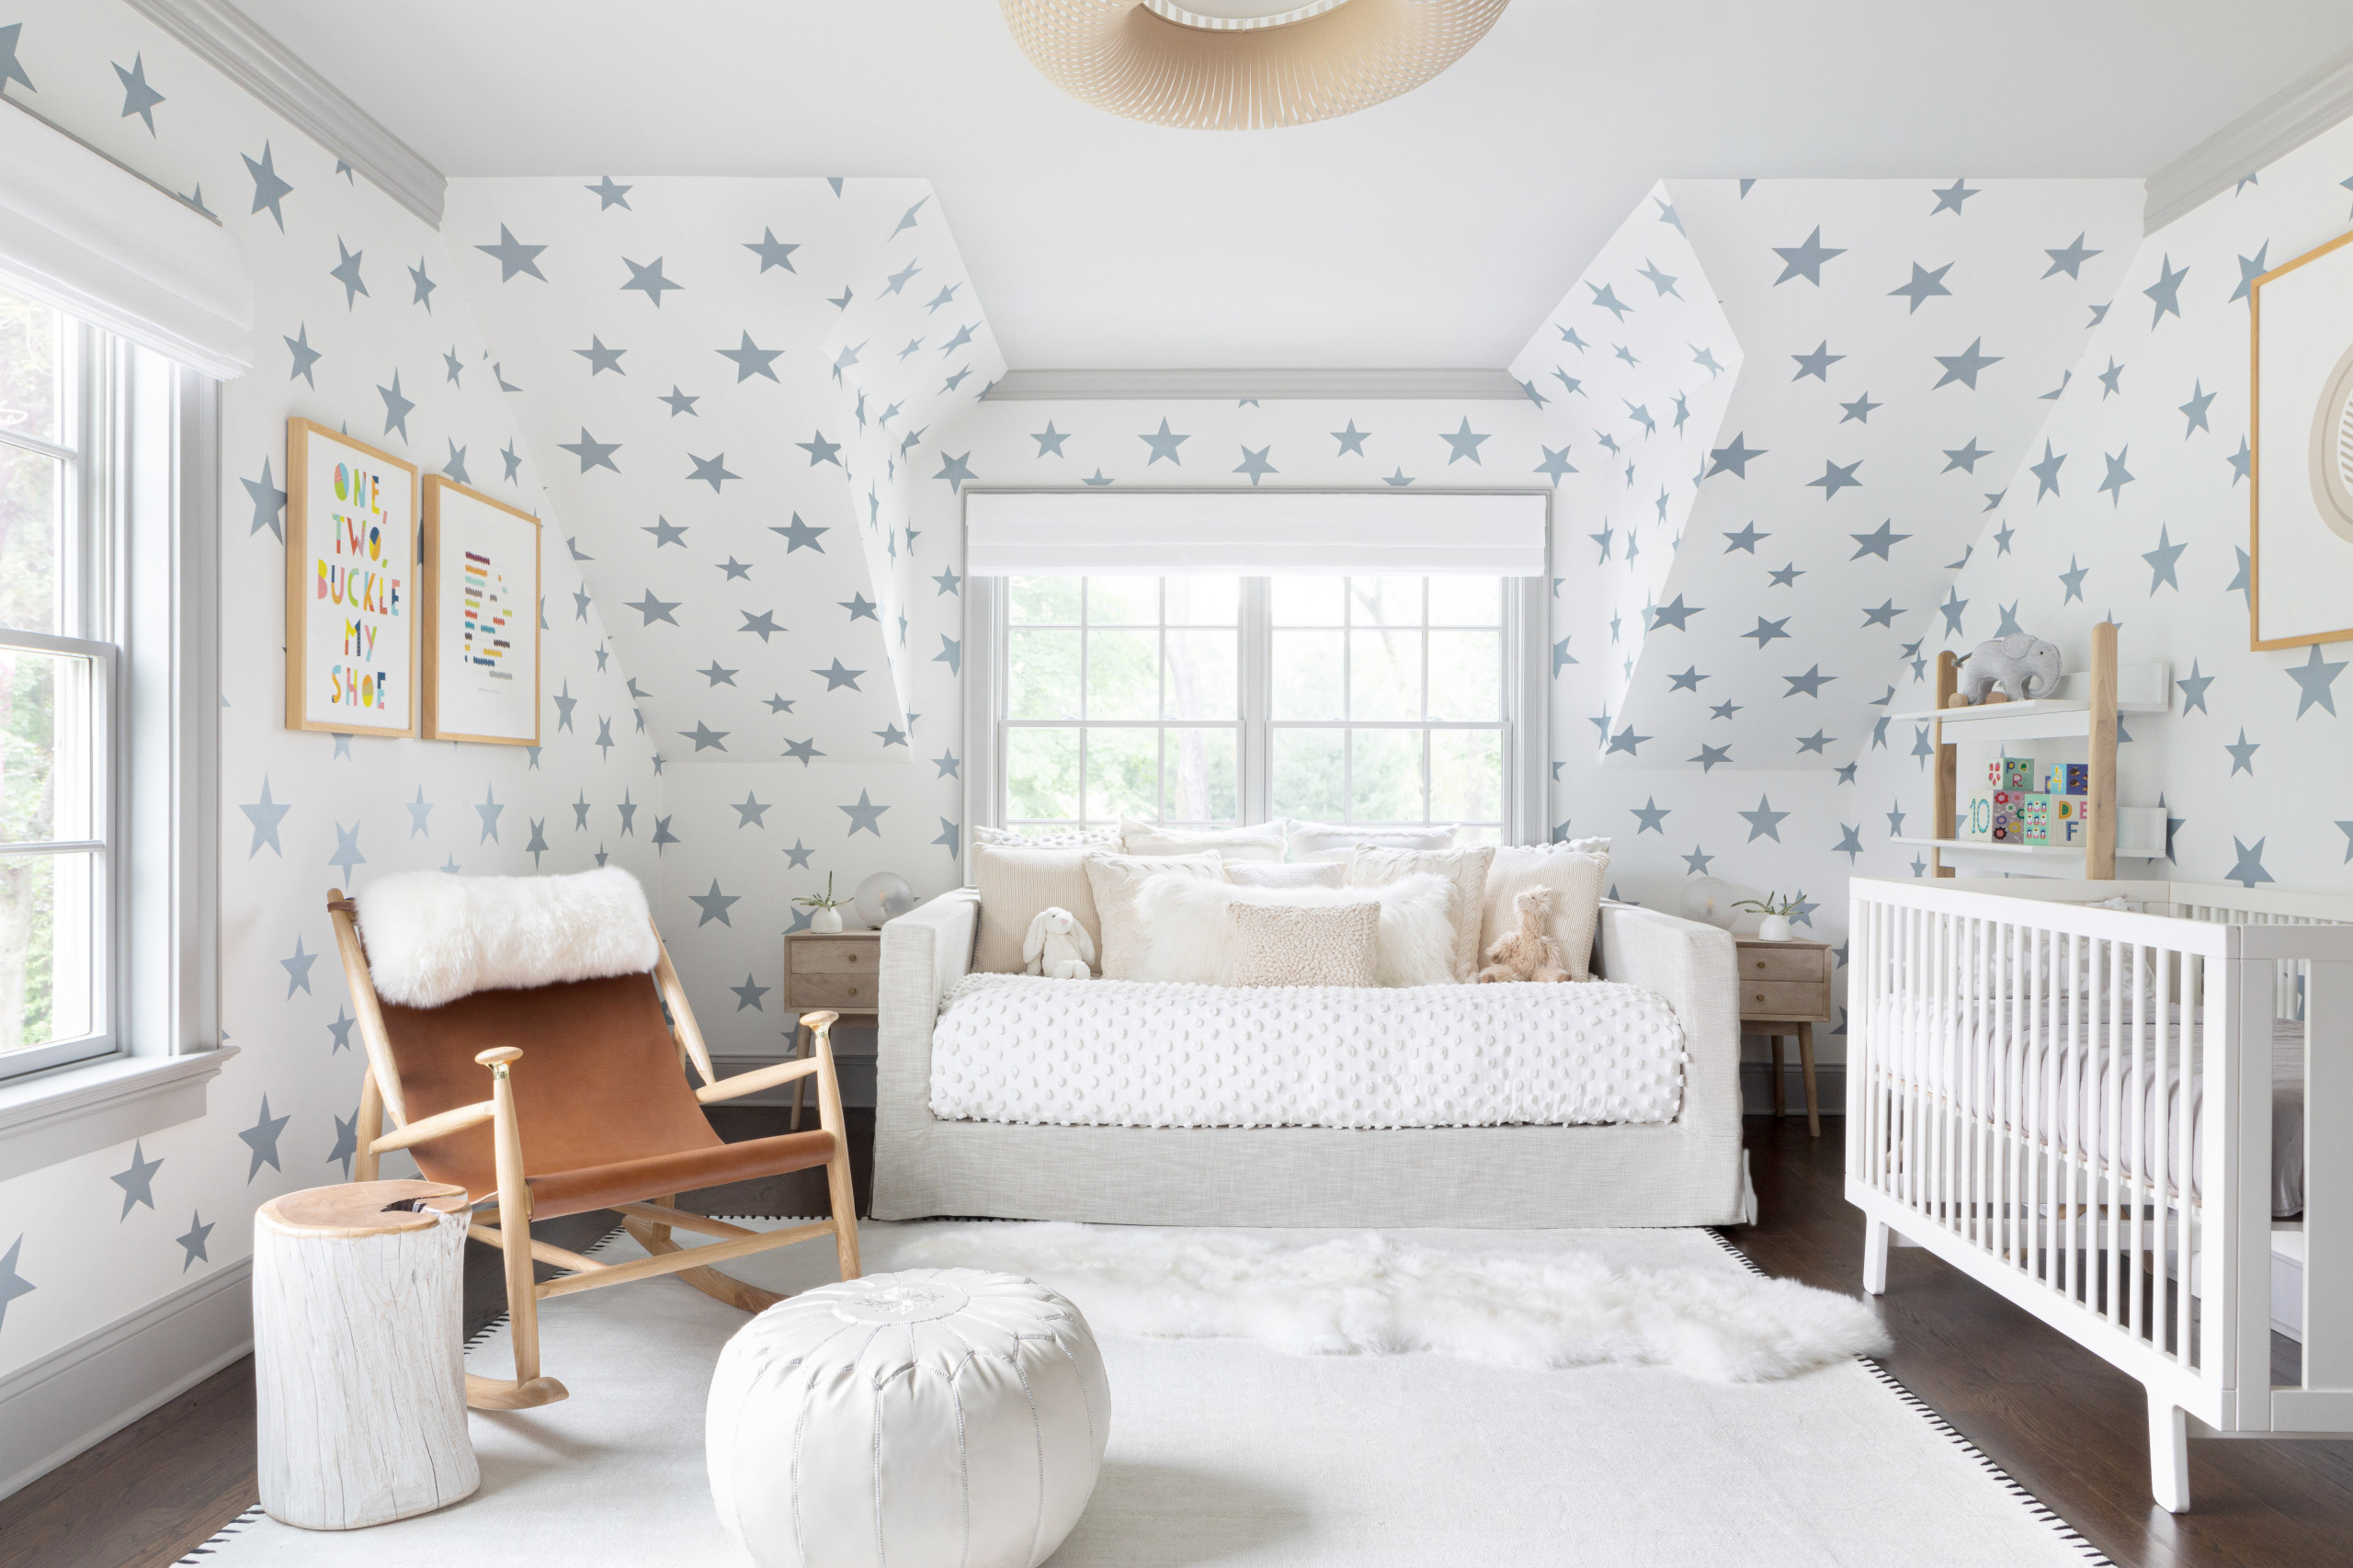 Contemporary nursery of New York home with a unique star-filled backdrop